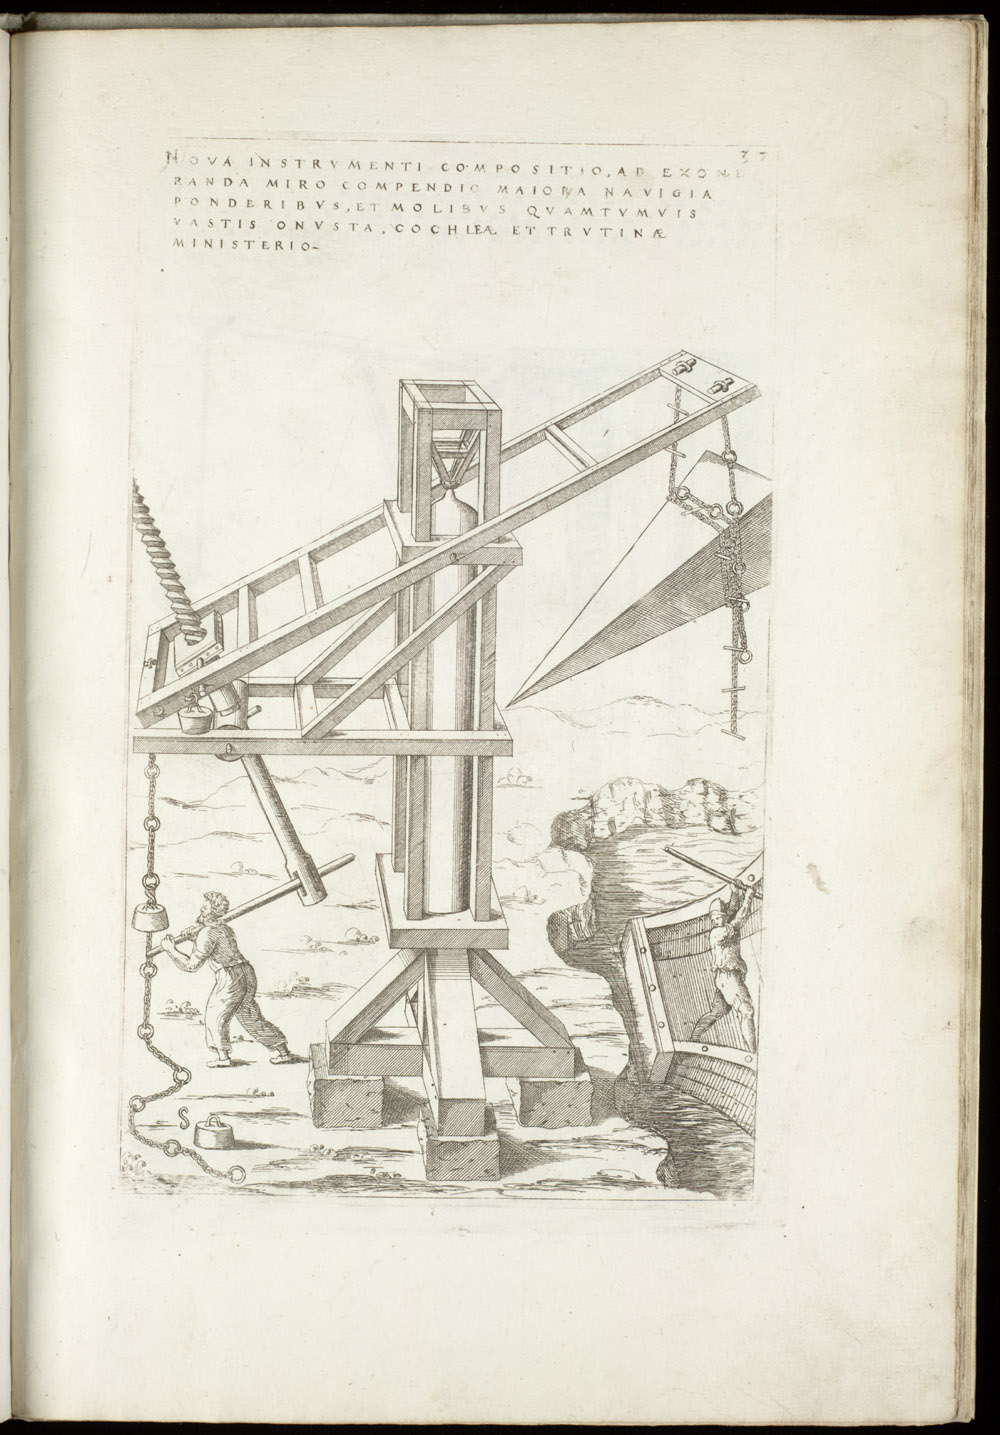 Plate 37 [Cargo crane],  Image number:SIL4-2-107a